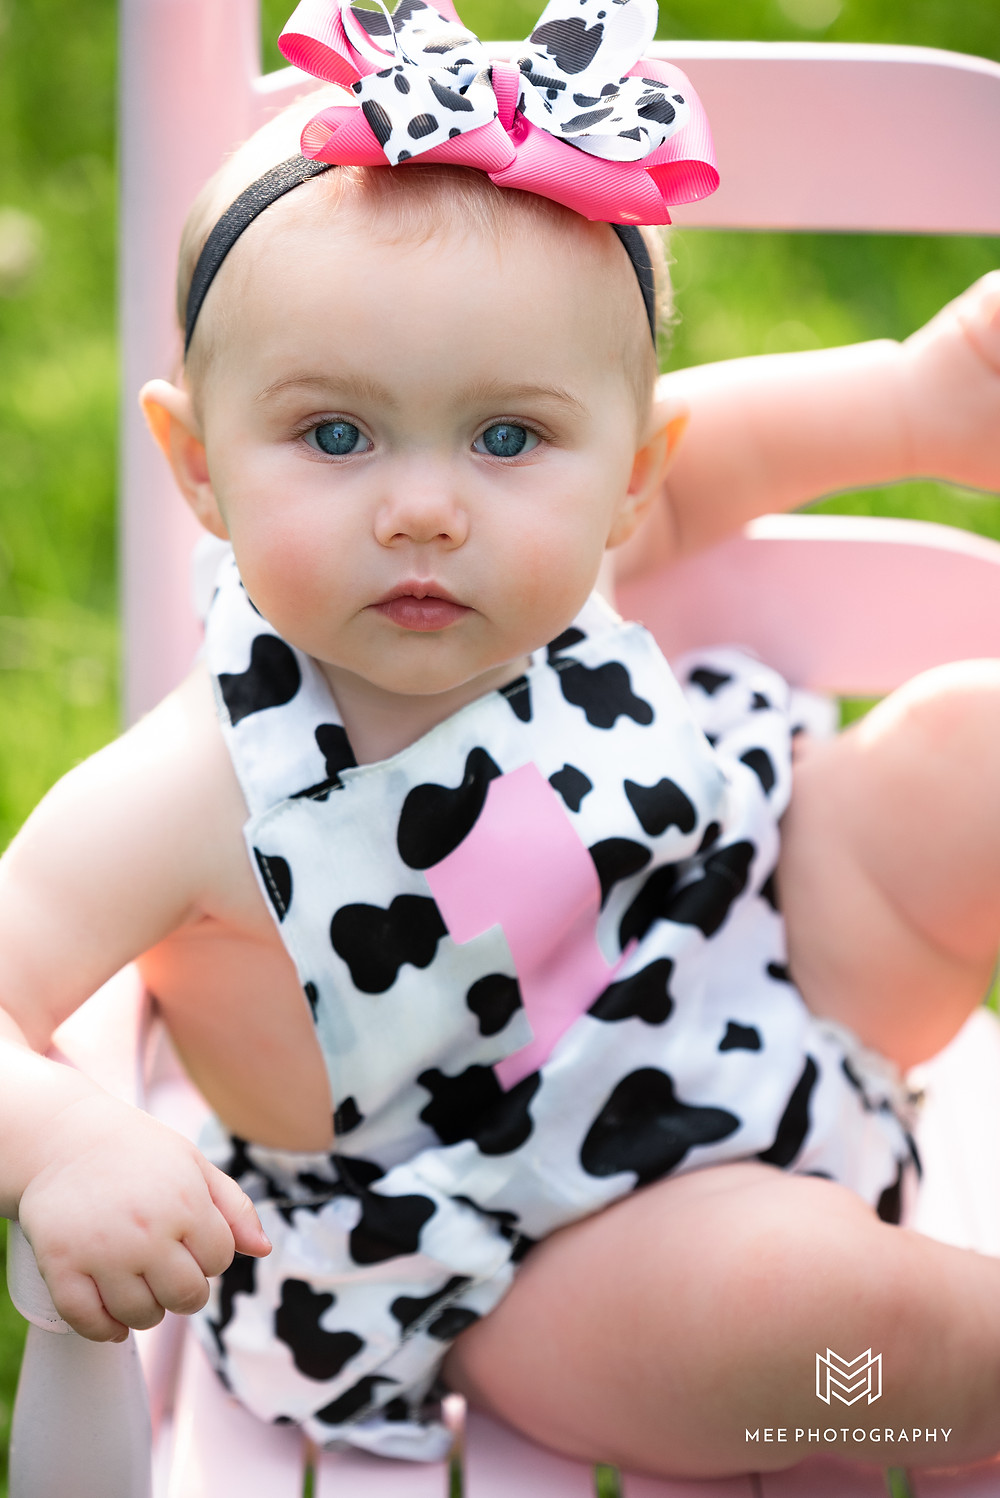 One year old baby girl wearing a black and white cow outfit and sitting in a pink chair